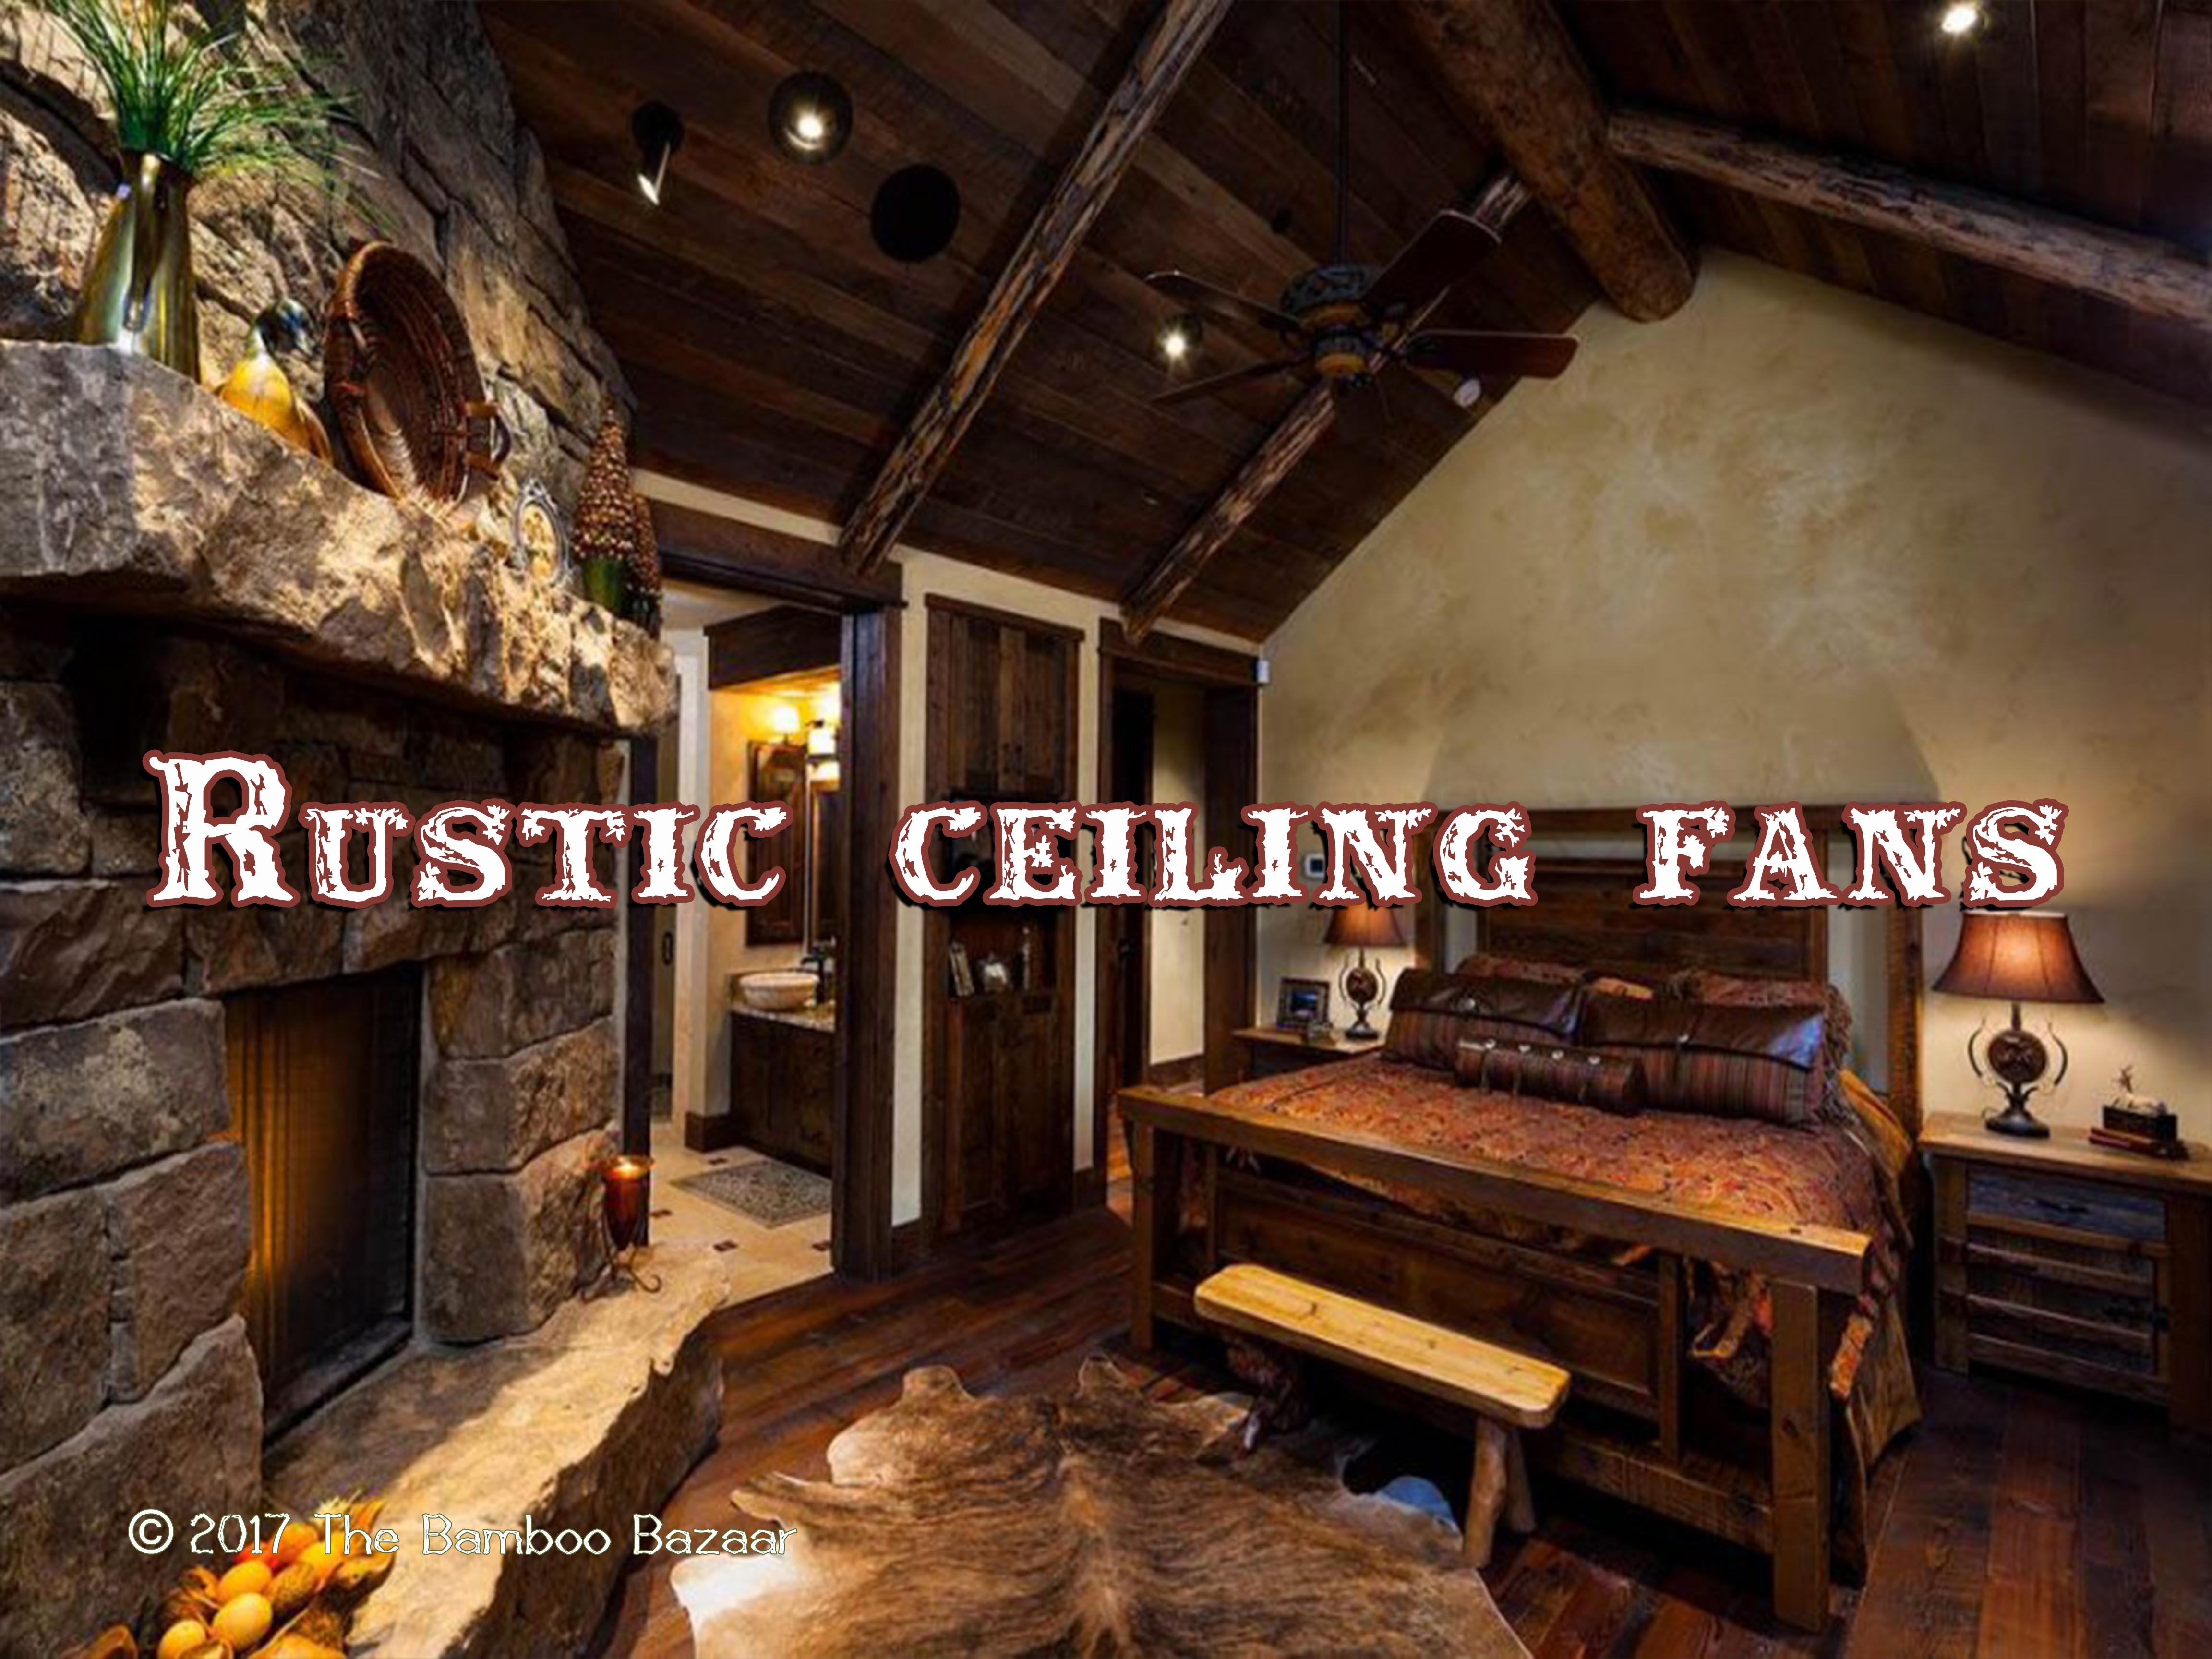 Ceiling Fan For Great Room Rustic Ceiling Fans With Lights A Guide To The Best Of 2017